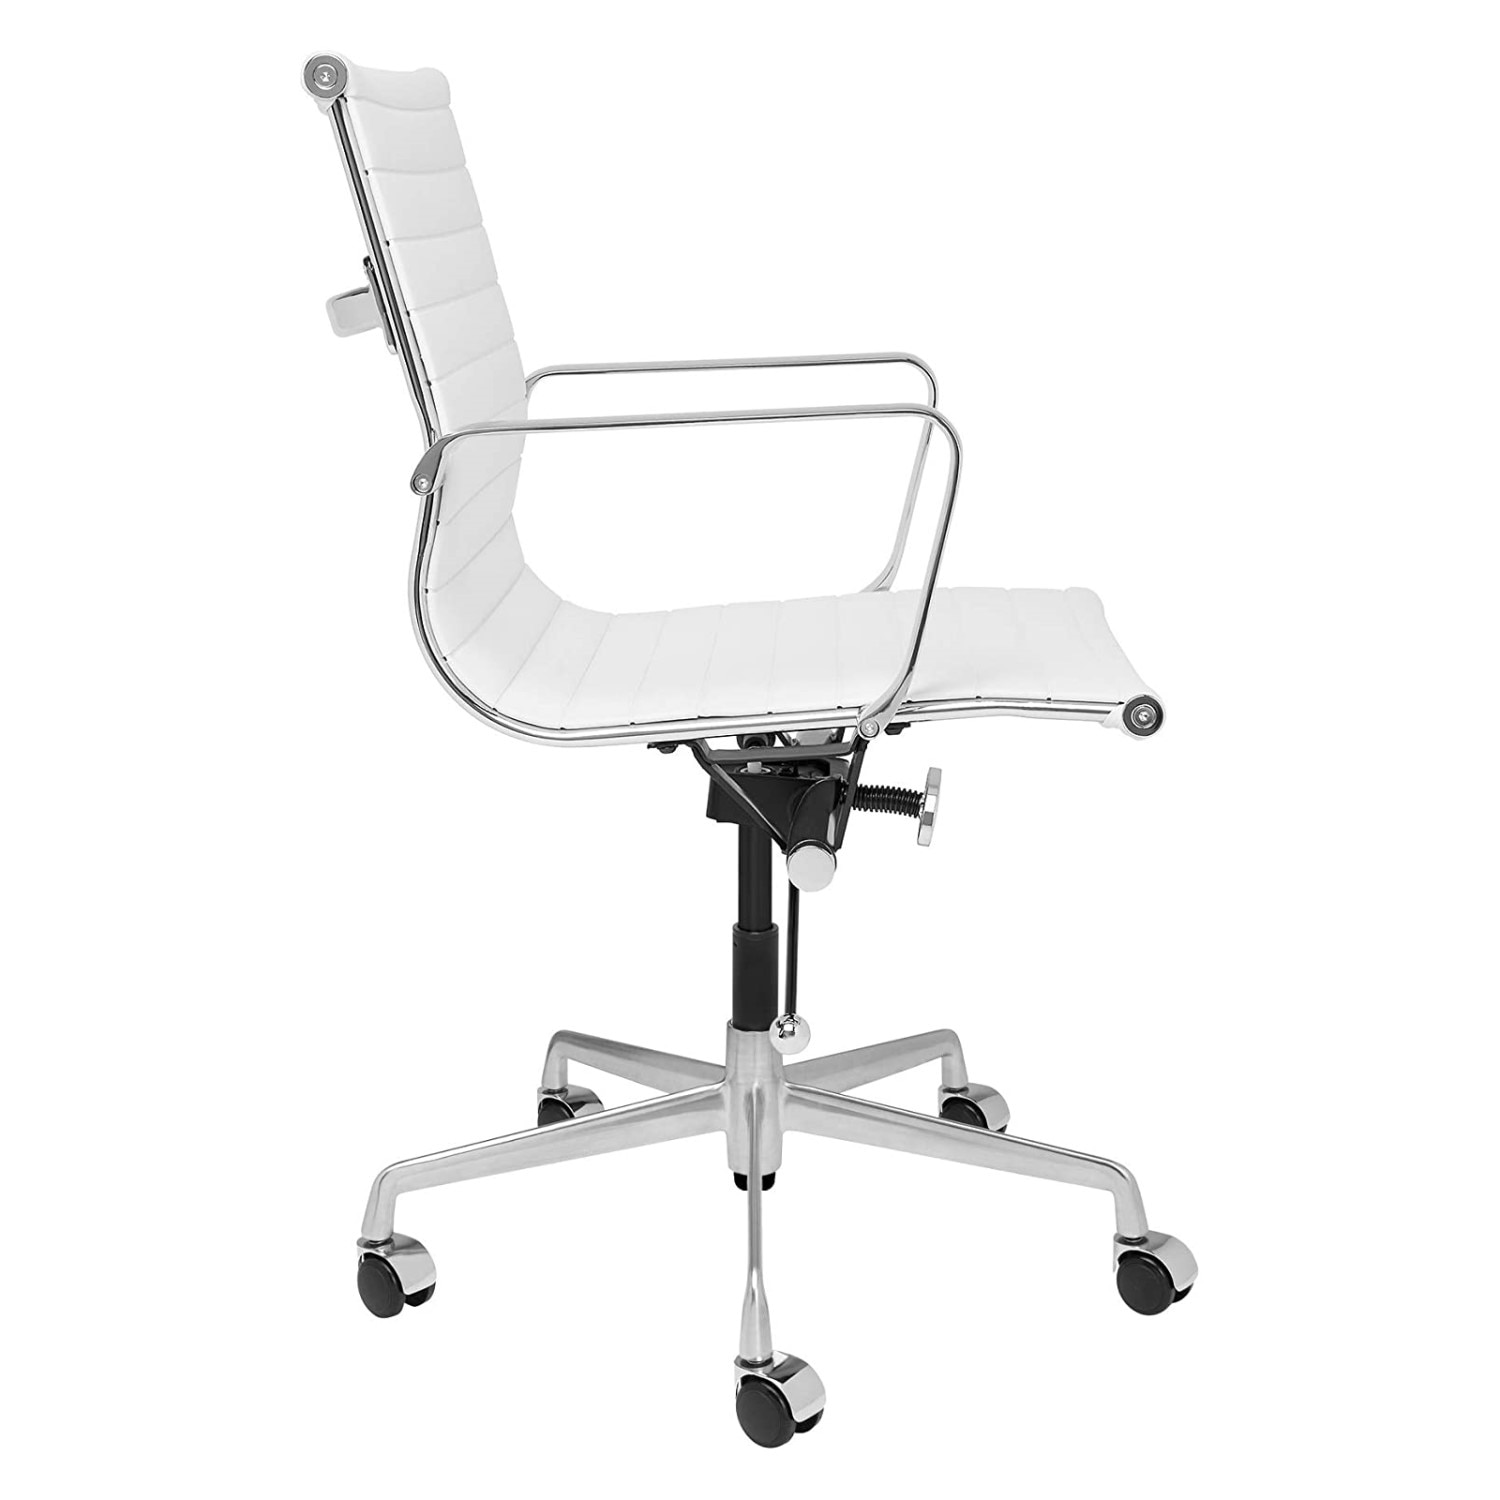 H6c4efb4415ac4317bce9eb8017c744fdt - Furgle Executive Office Chair Mid Back PU Leather with Arms Rest Tilt Gaming Chair Adjustable Height with Wheels Swivel Chairs